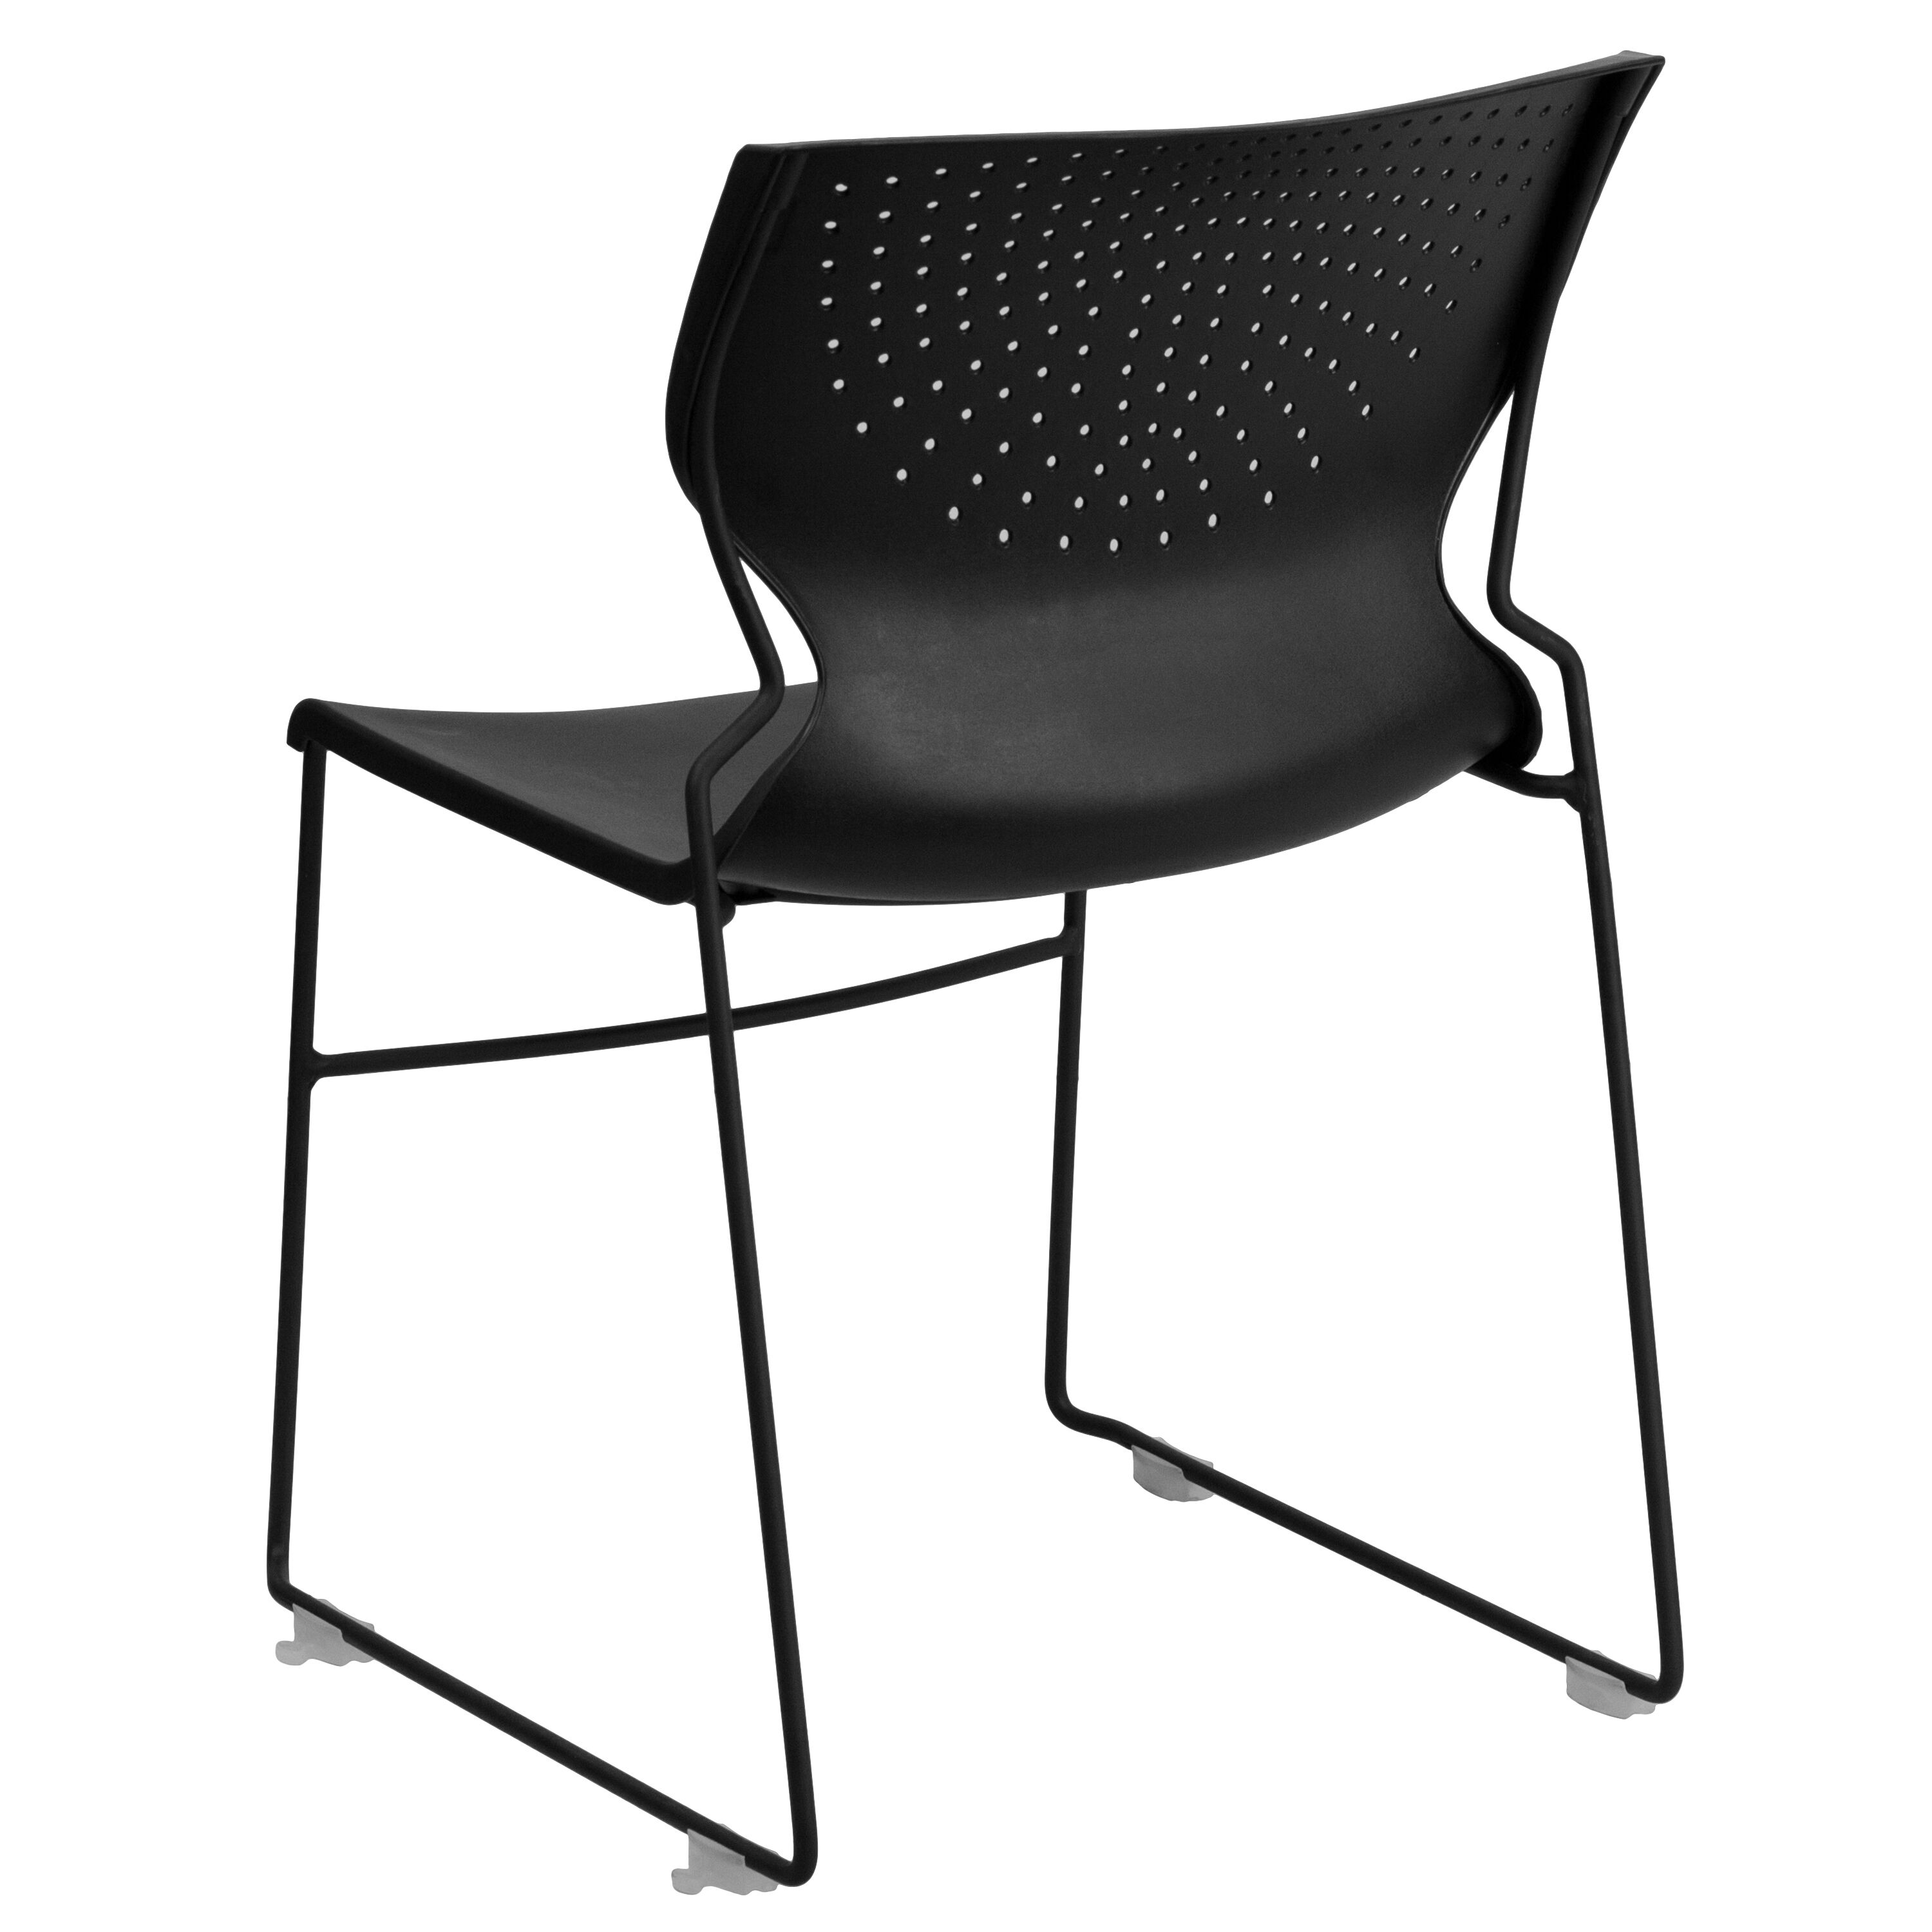 stackable chairs for less rattan outdoor dining uk black plastic stack chair rut 438 bk gg stackchairs4less